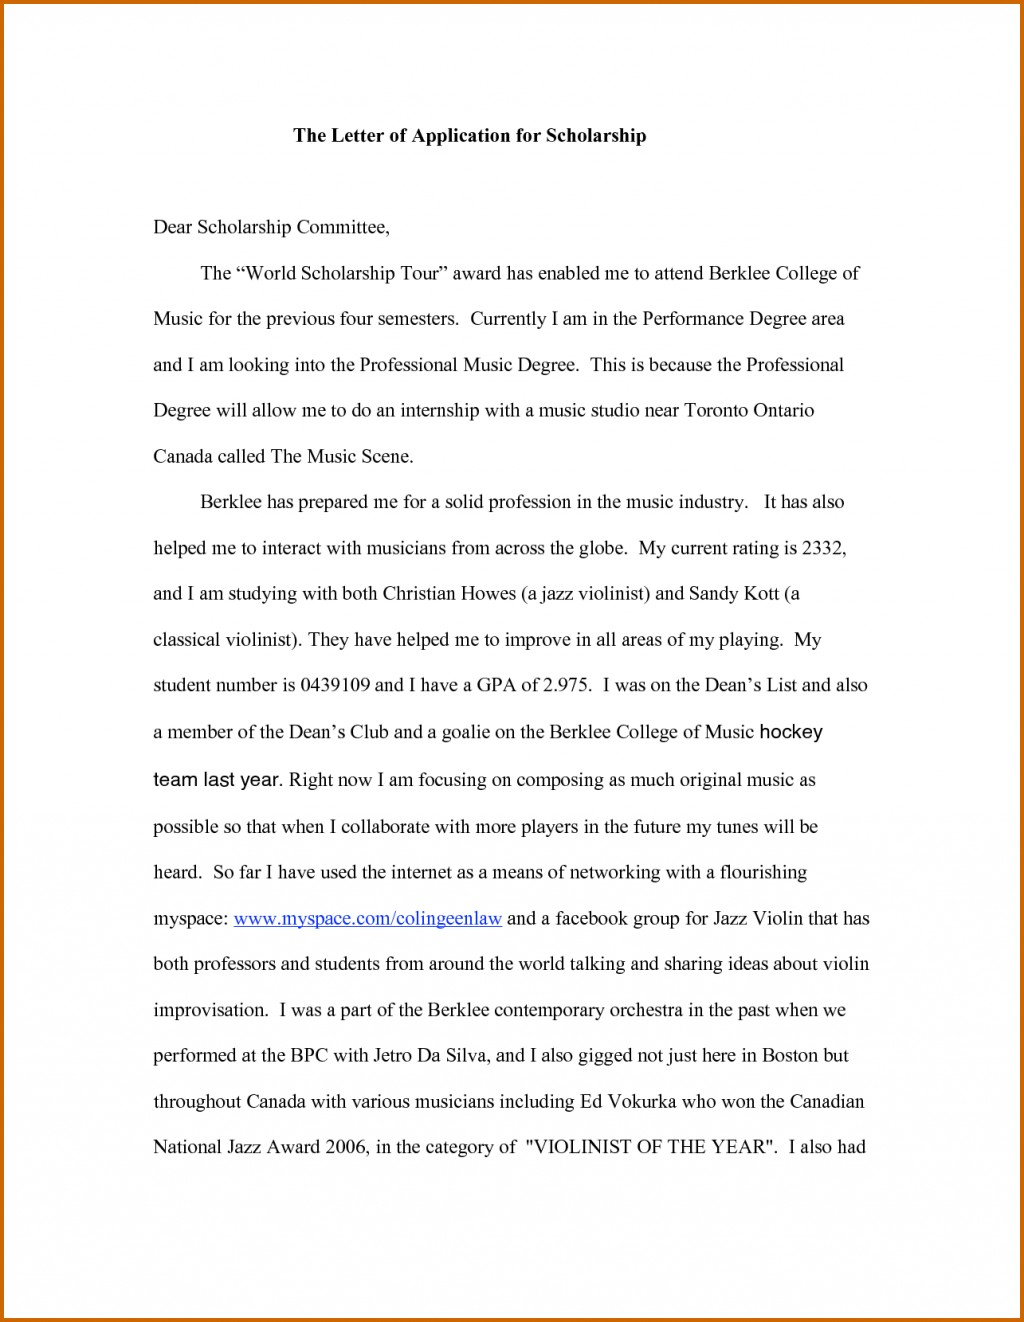 008 What To Write In Scholarship Essay Writer My How Personal Statement For Scholarships Application Good Shocking High School Students Study Abroad Examples 2018 Bachelors And Masters Large